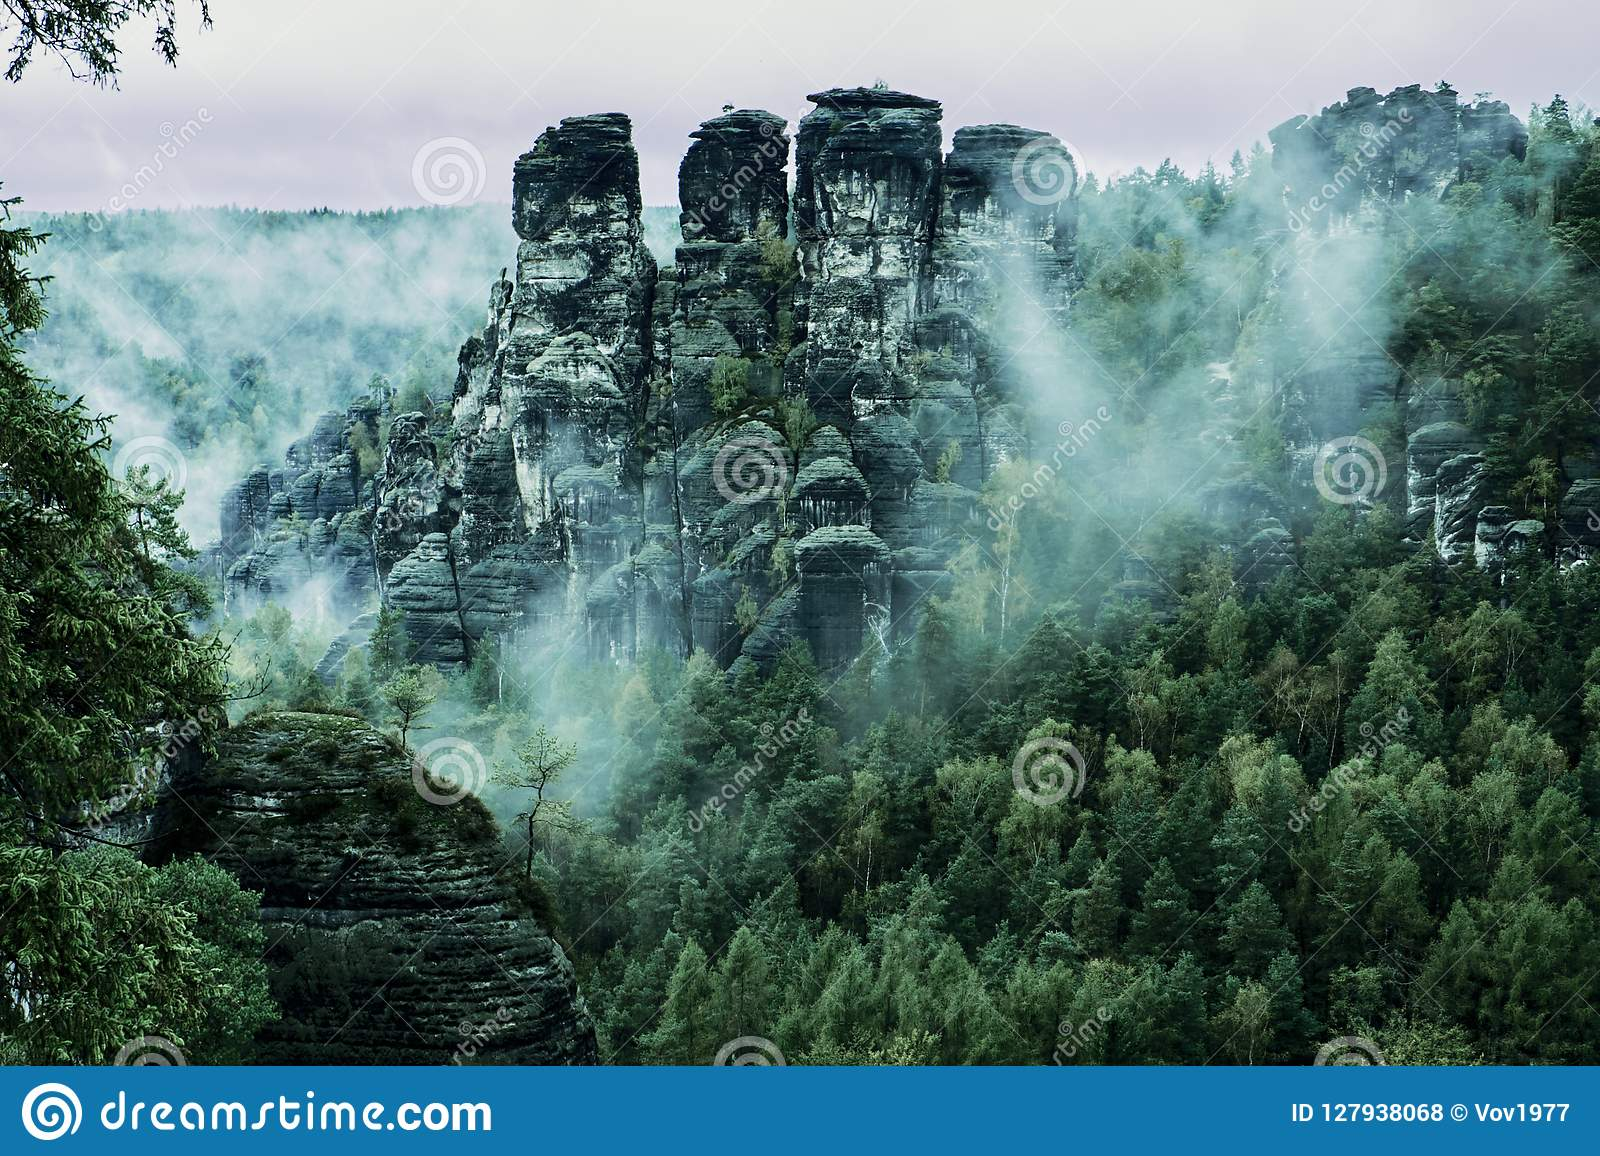 Bastei rock formations, Saxon Switzerland National Park, Germany. Misty landscape with fir forest in hipster vintage retro style